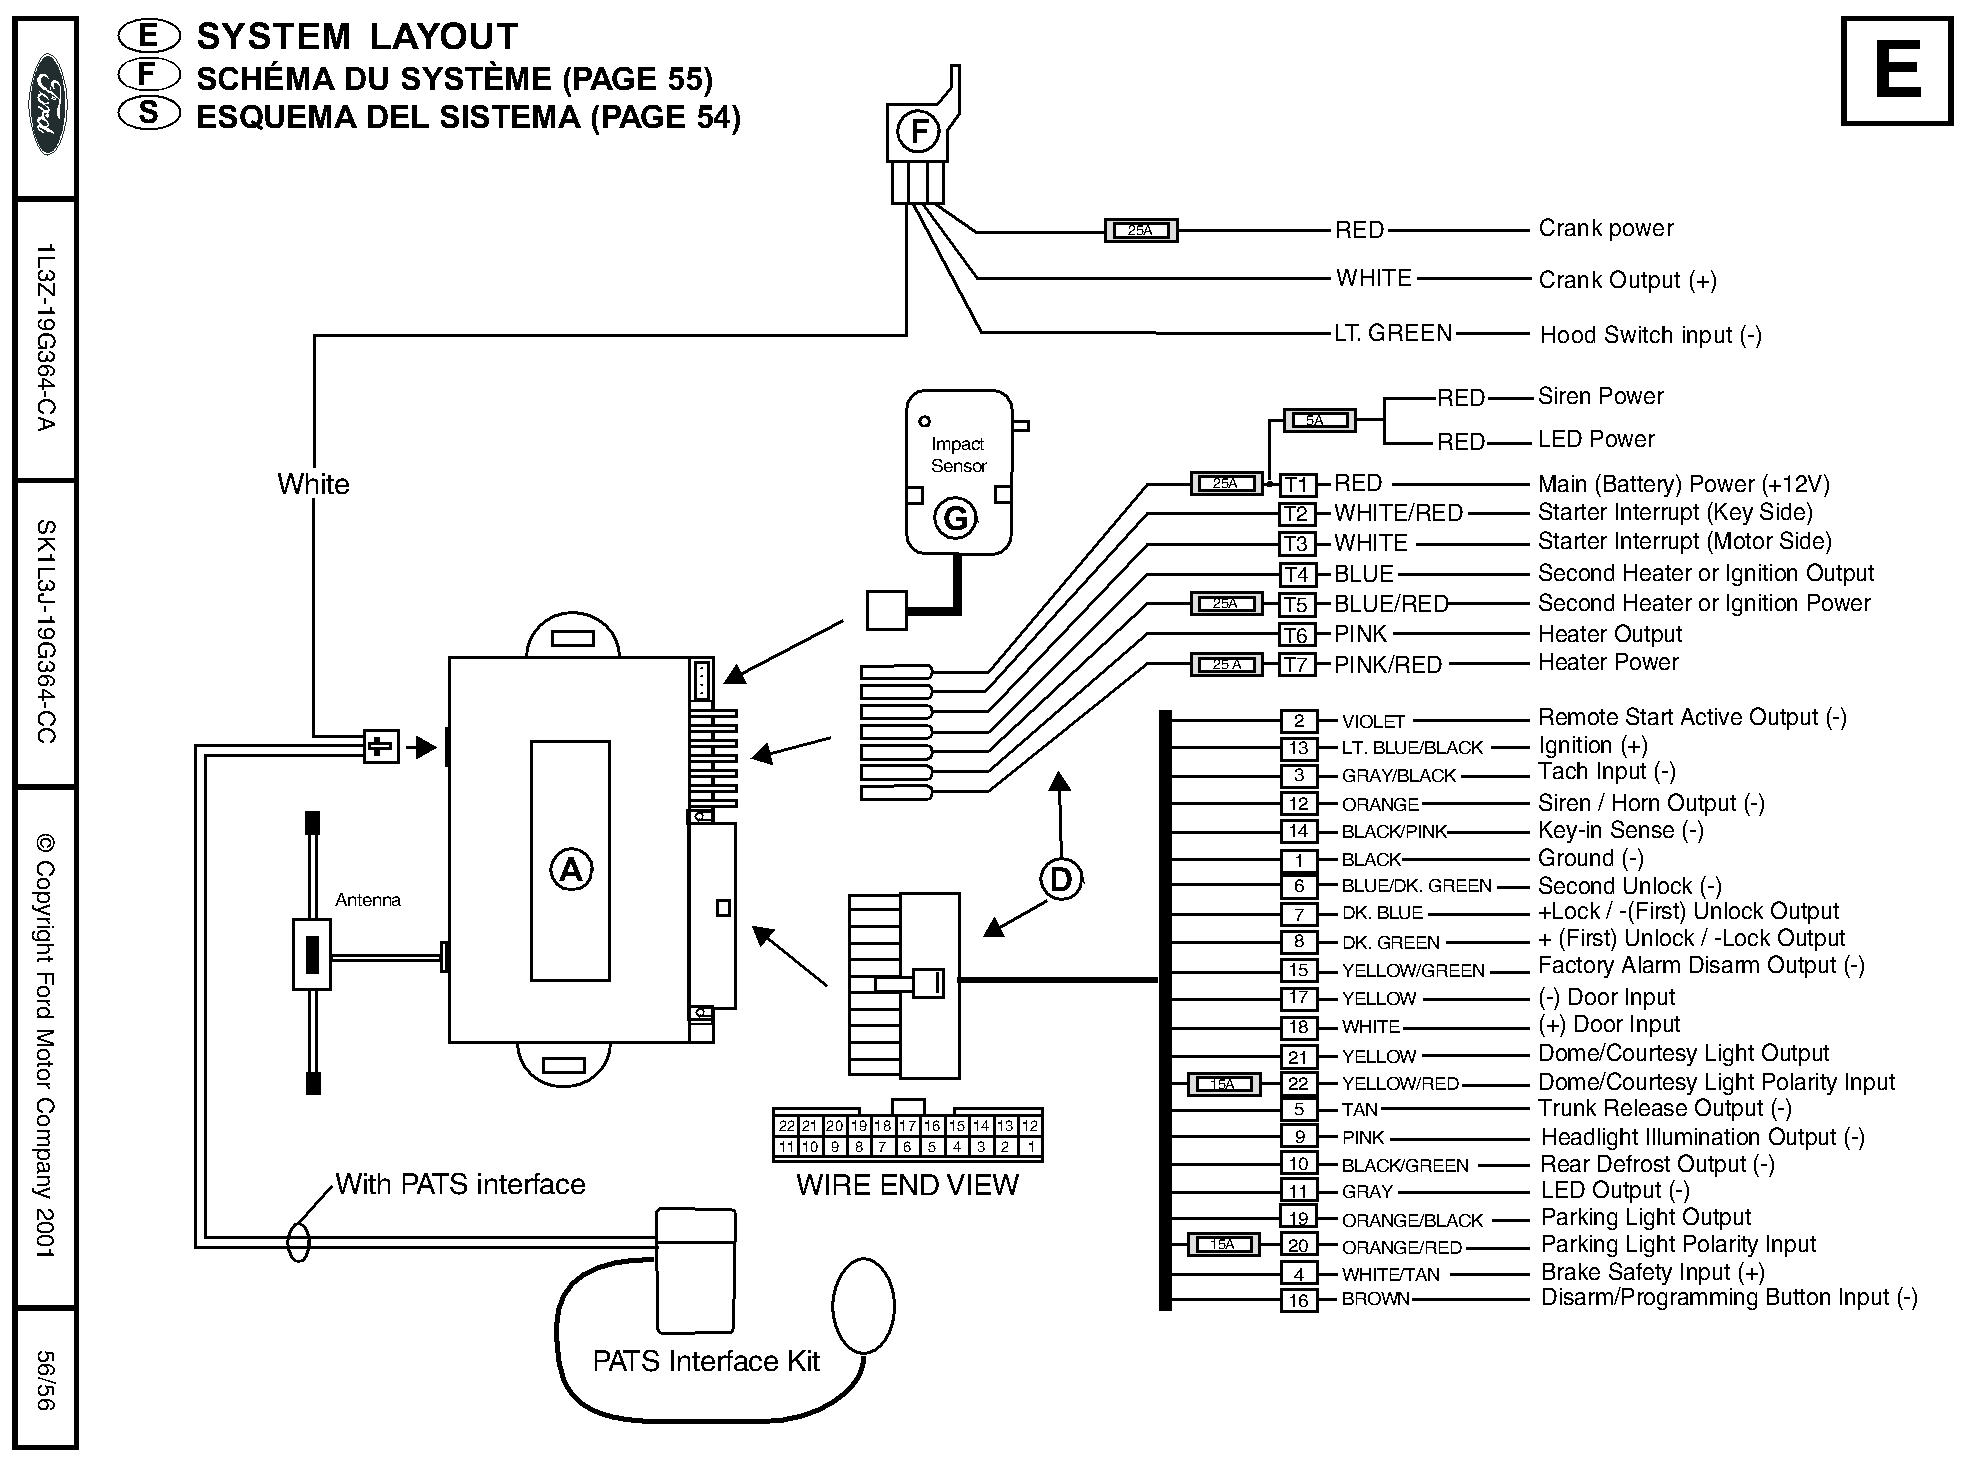 medium resolution of opel remote starter diagram wiring library rh 68 evitta de 2006 jeep commander engine diagram 1996 jeep cherokee wiring diagram